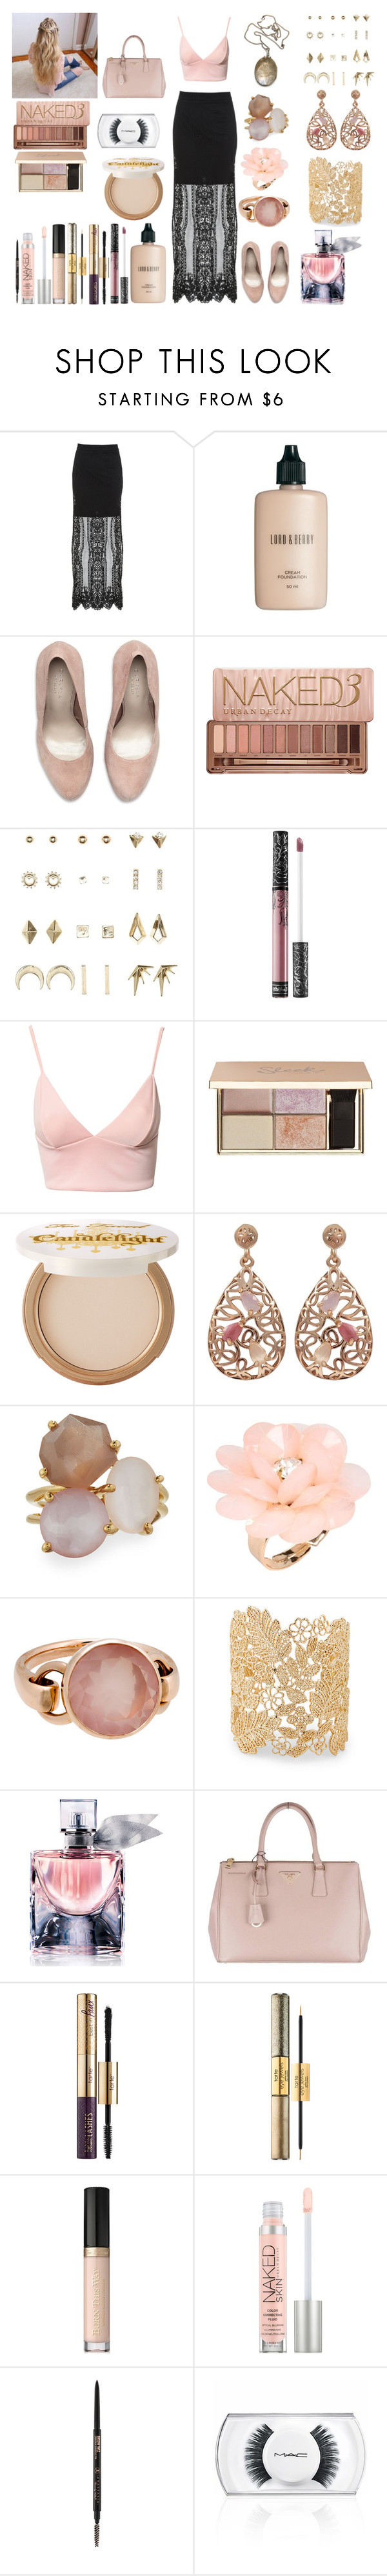 """Untitled #691"" by asiebenthaler ❤ liked on Polyvore featuring Miss Selfridge, Lord & Berry, Carvela Kurt Geiger, Urban Decay, Charlotte Russe, Vintage Collection, Kat Von D, Dark Pink, Luxiro and Ippolita"